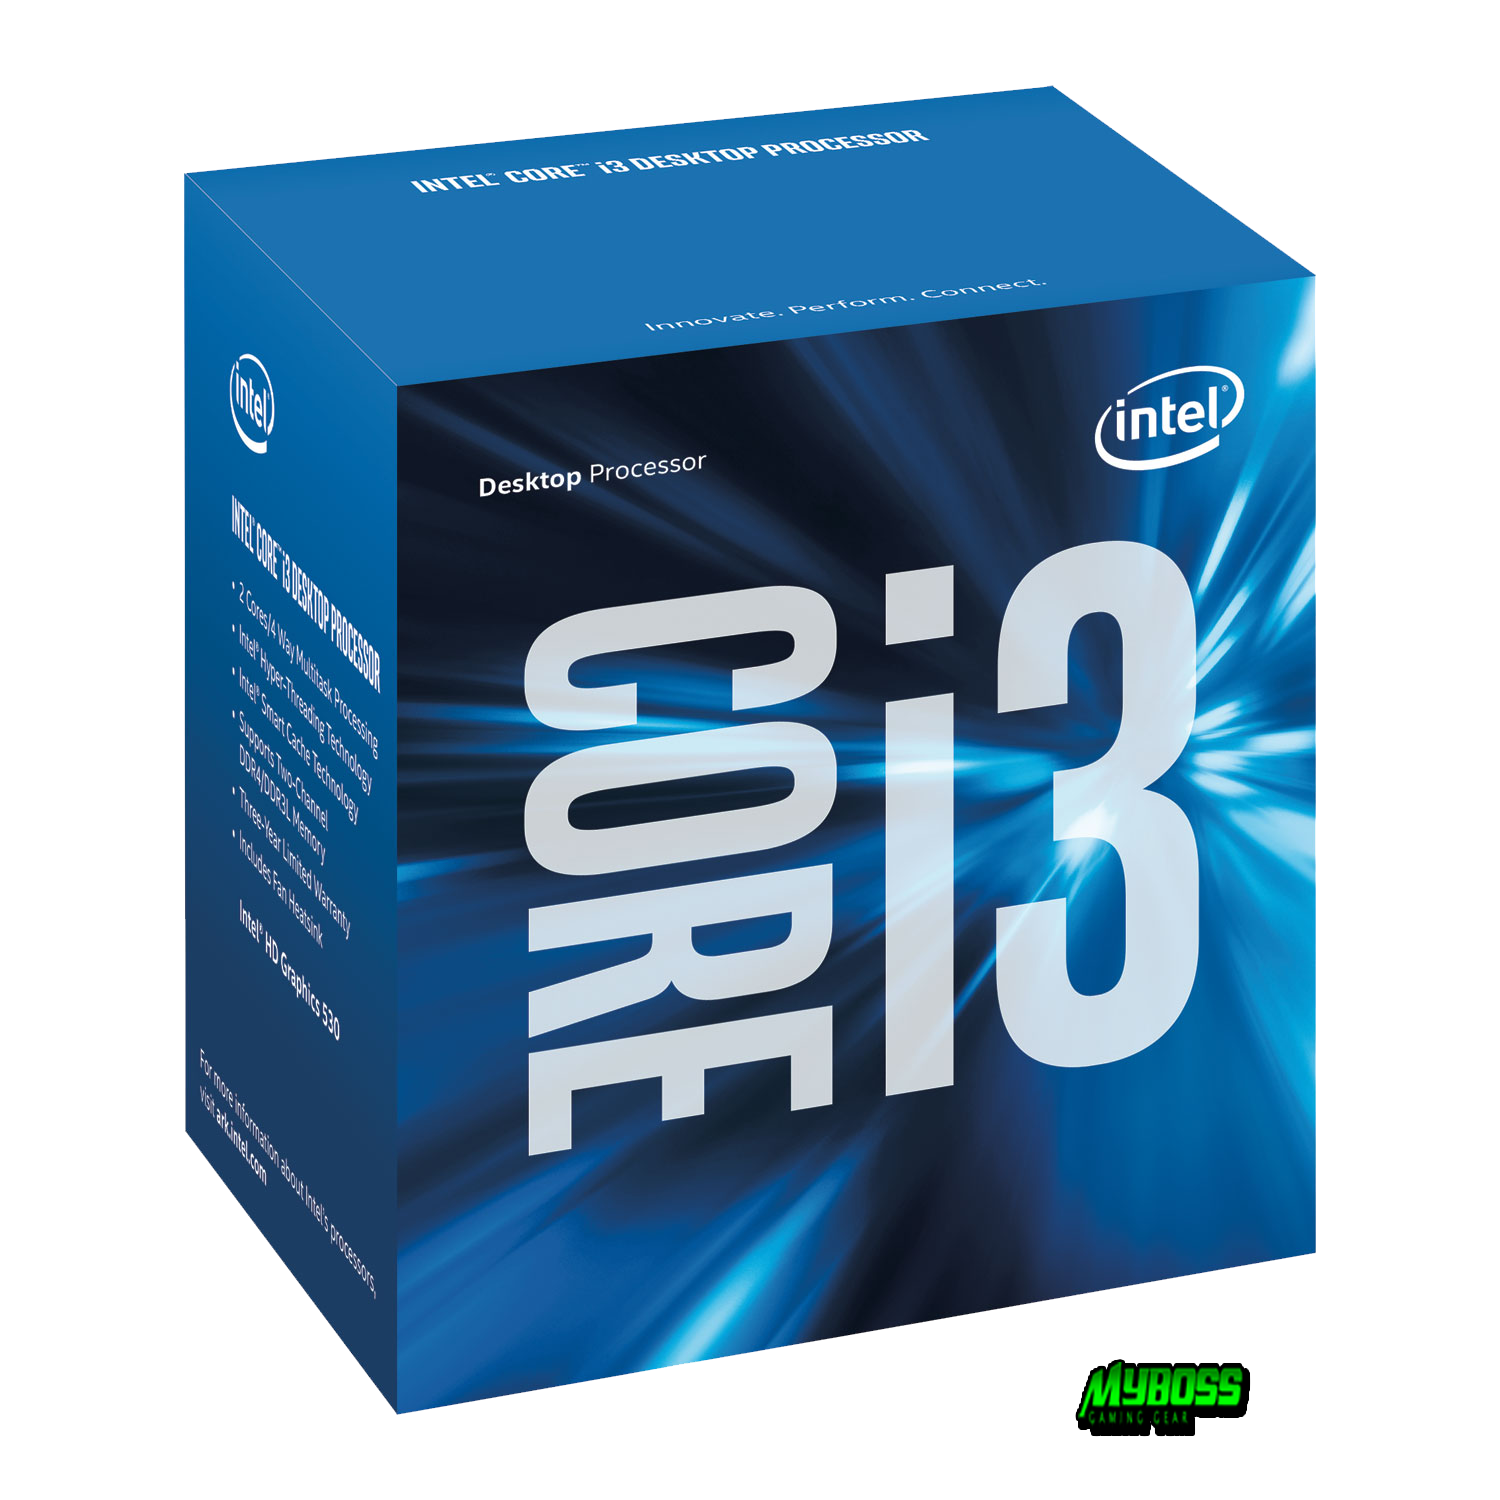 images/attachment/Intel-Skylake-Core-i3_1.png